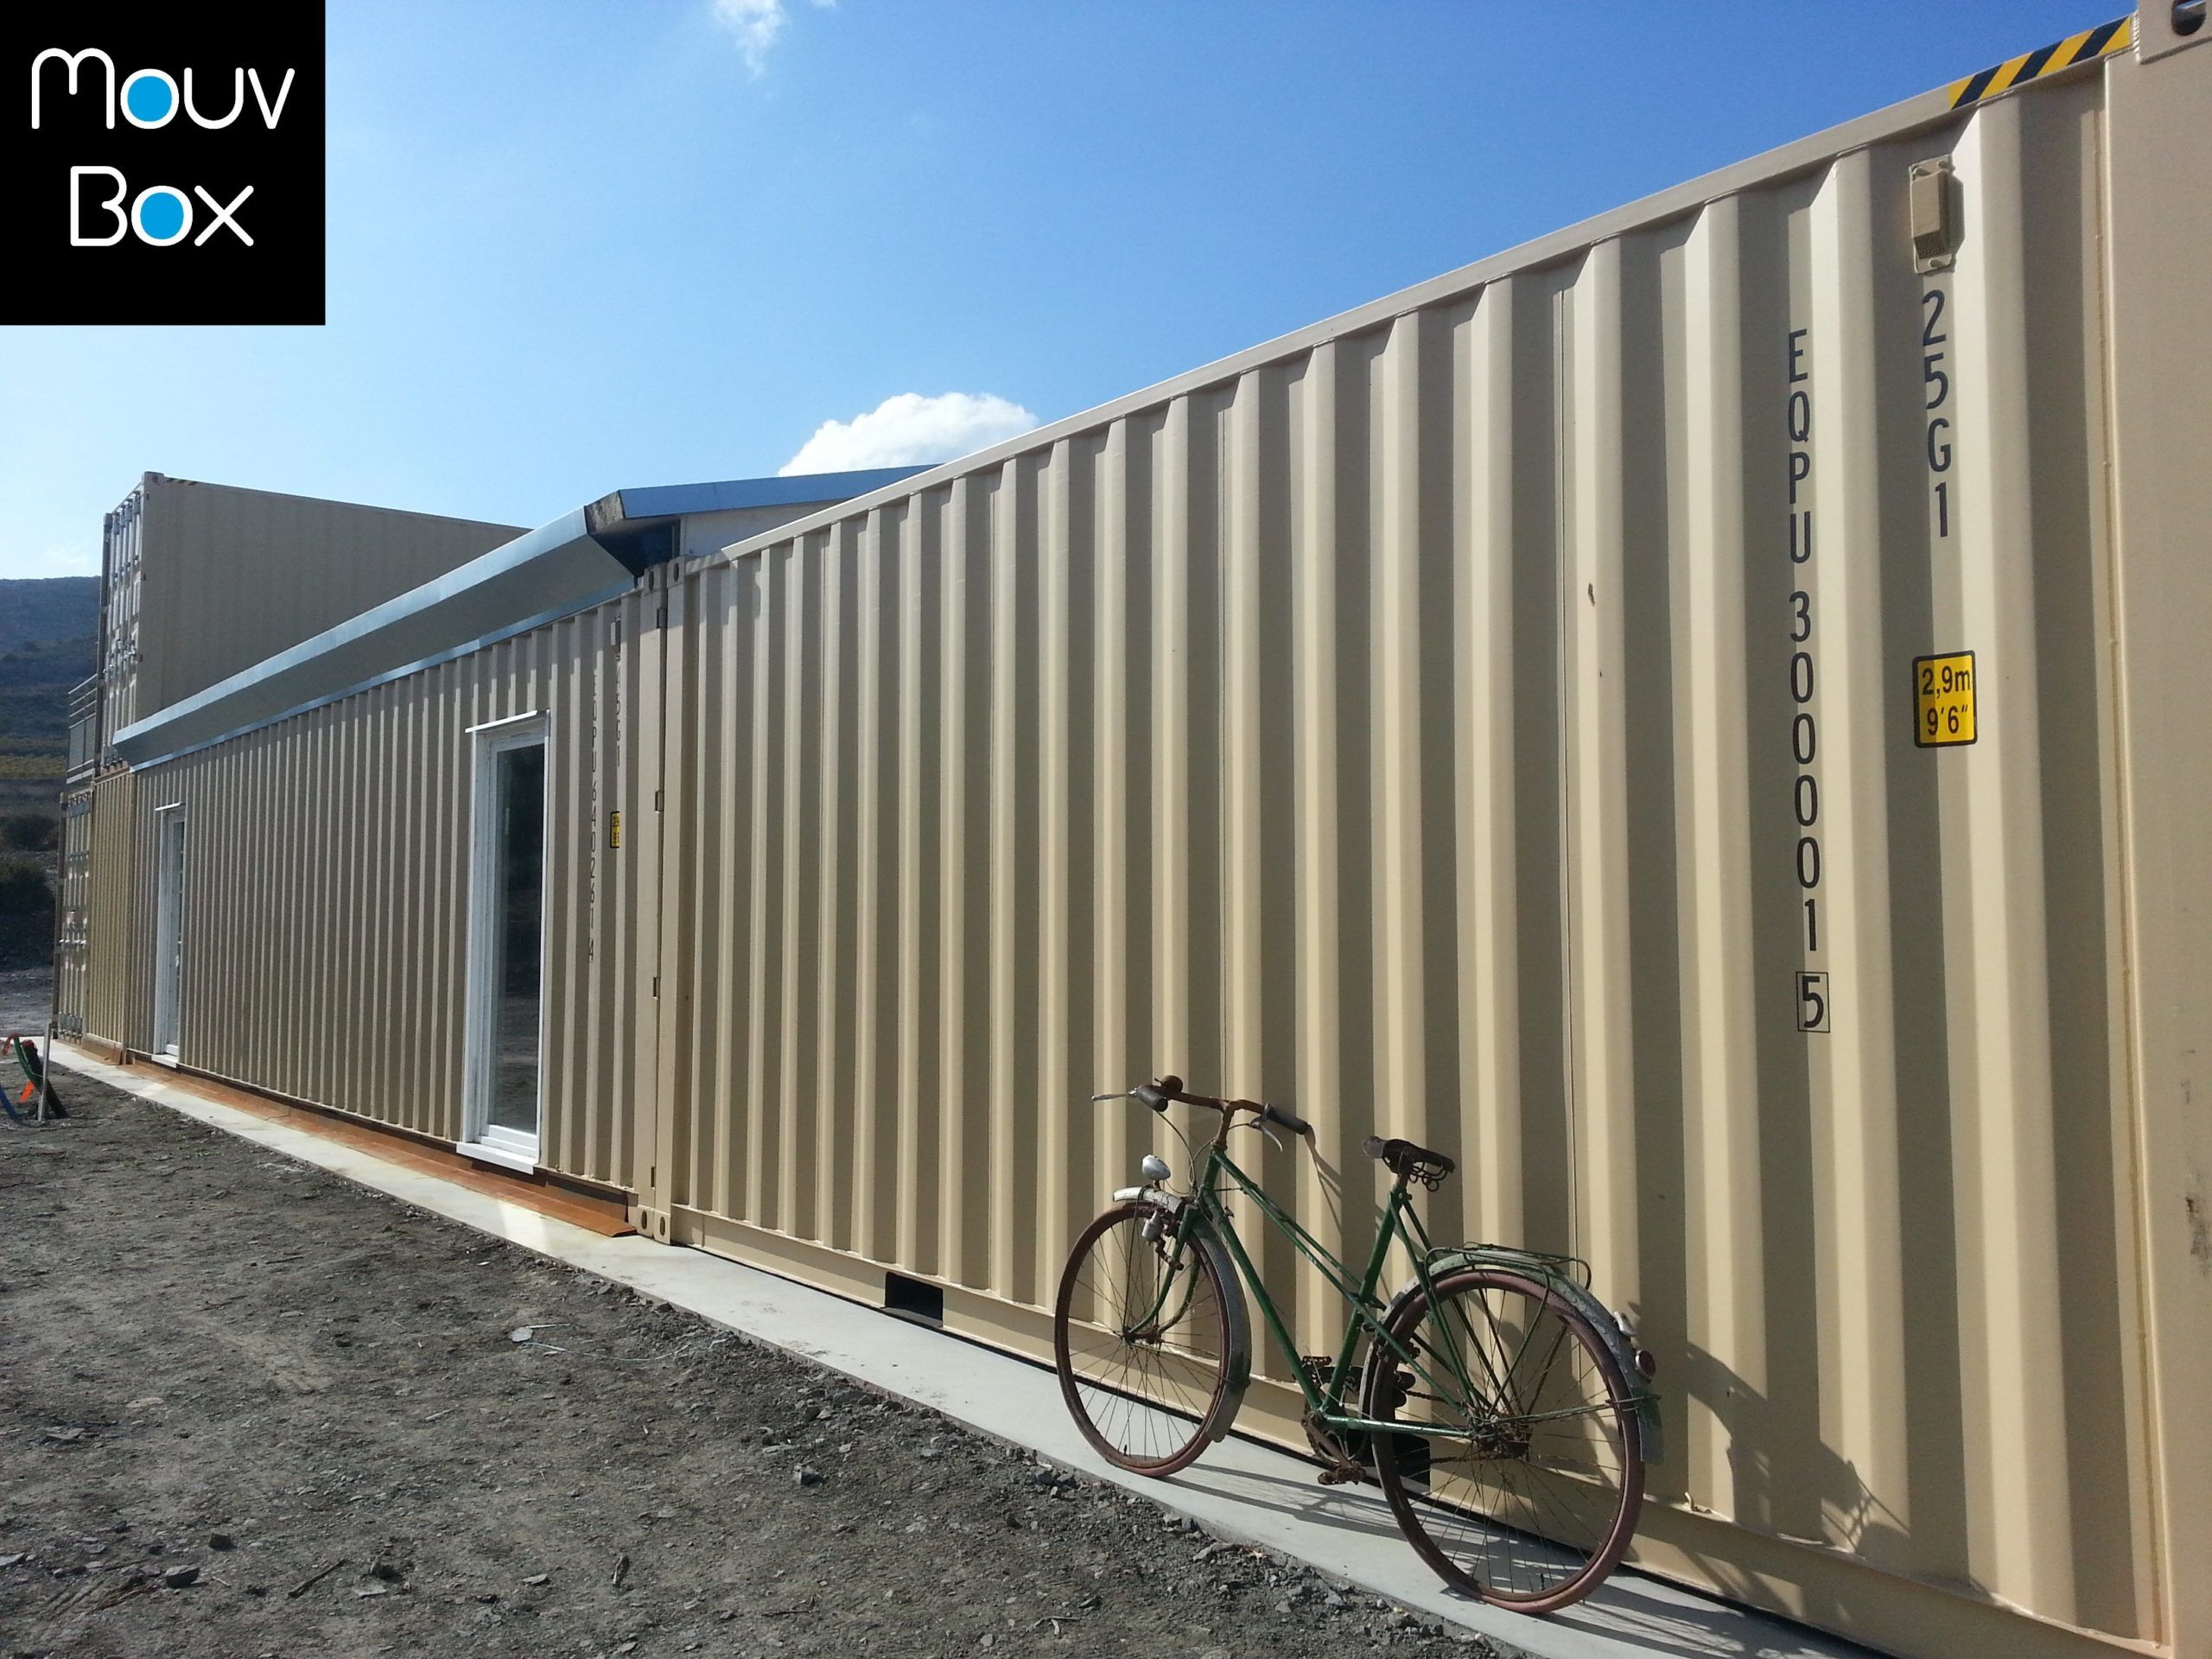 Mouvbox france domaine amagat les travaux avancent for Location container habitable